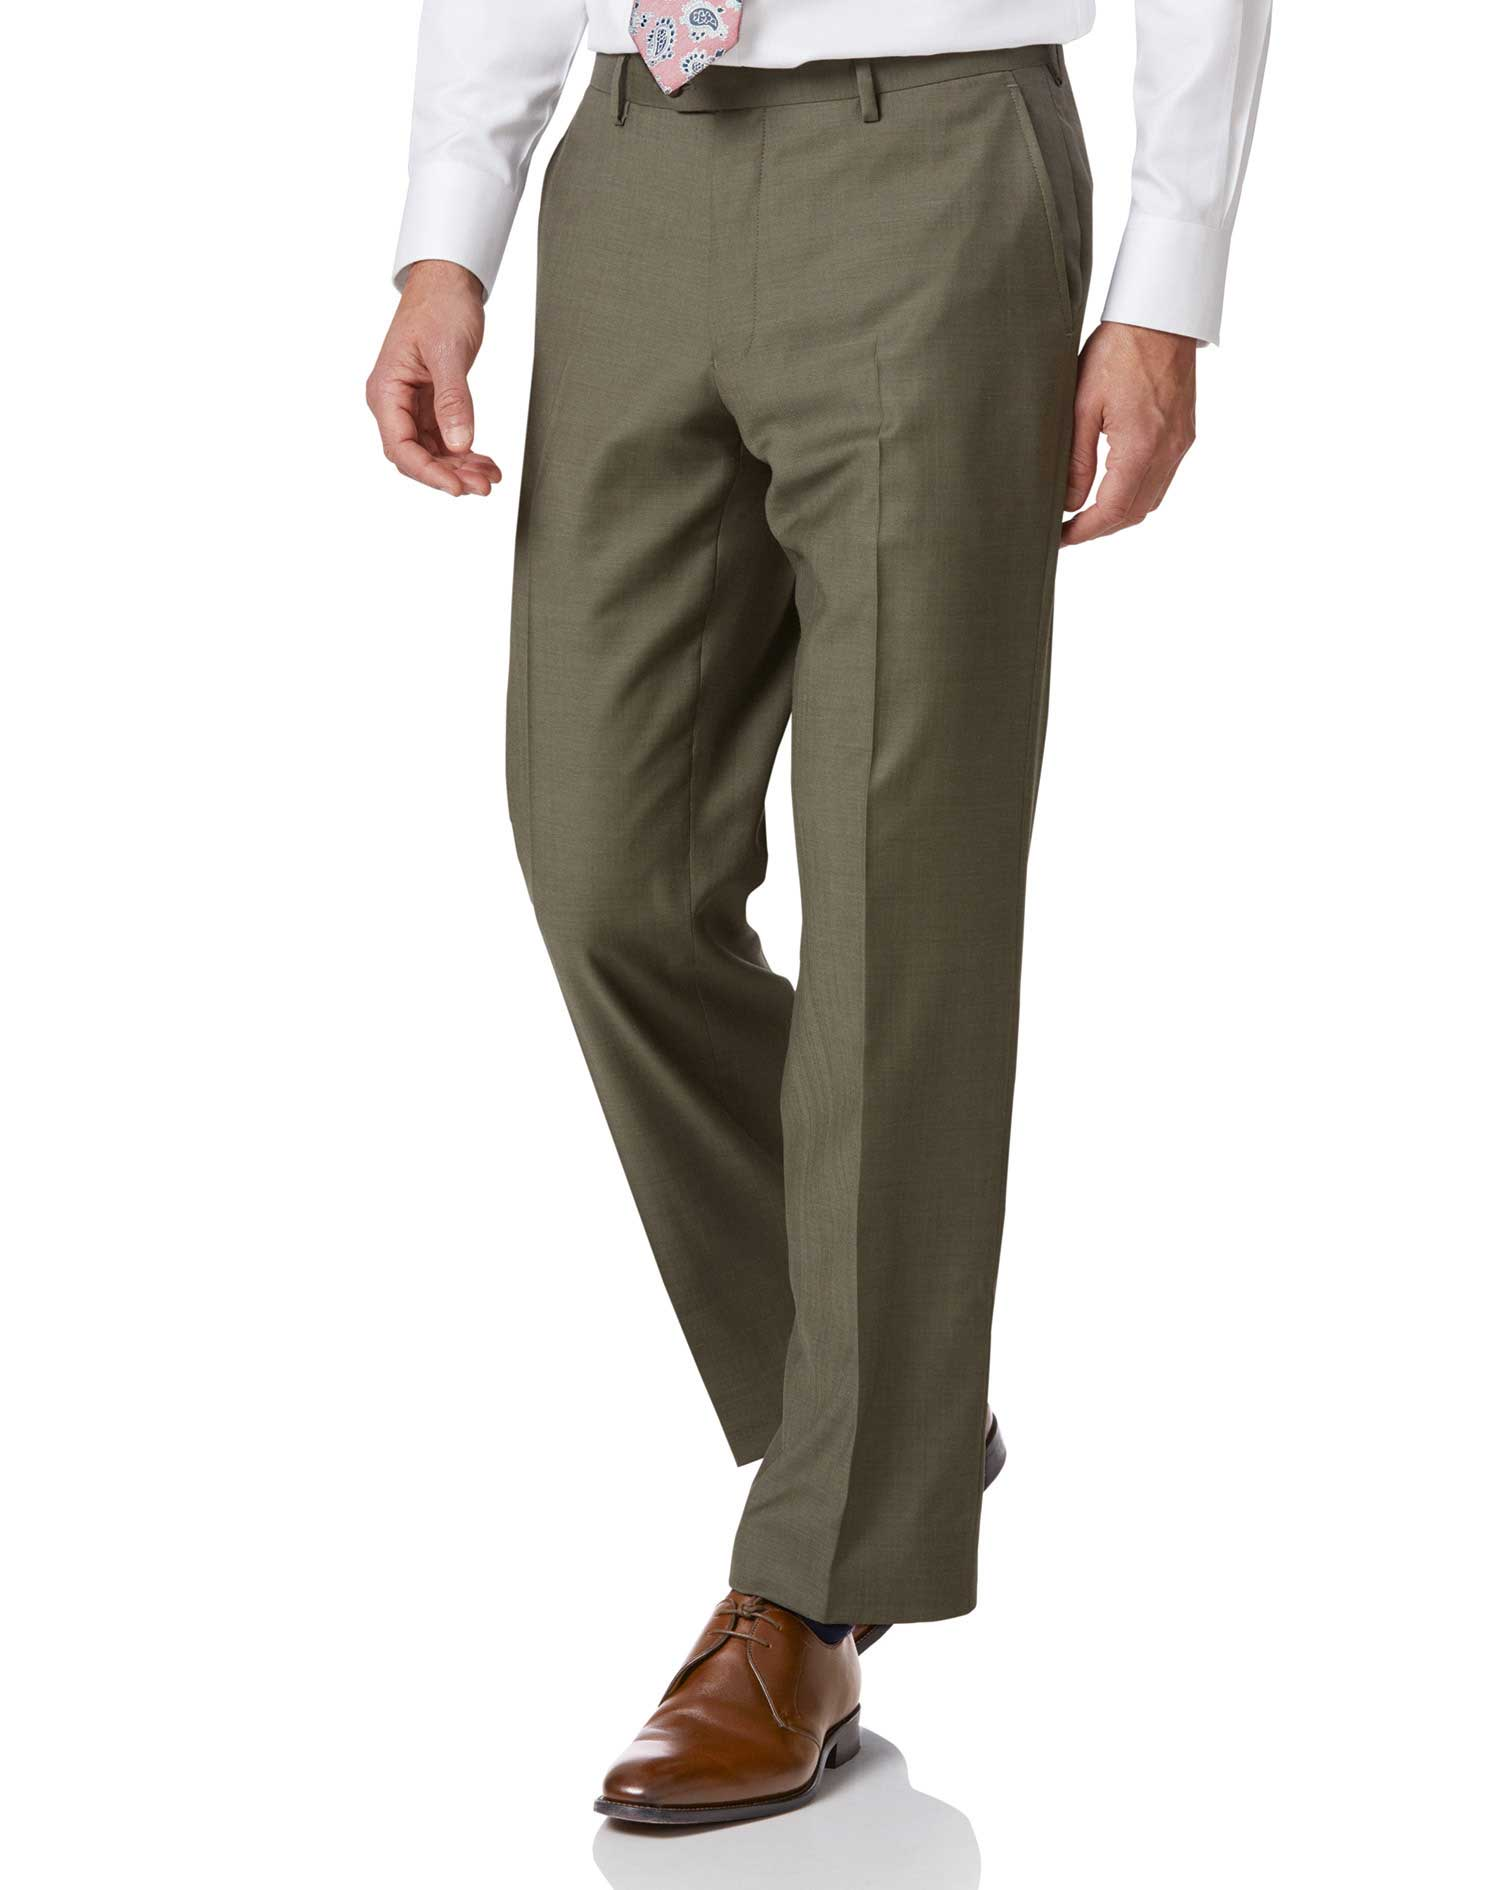 Olive Classic Fit Twill Business Suit Trousers Size W38 L32 by Charles Tyrwhitt